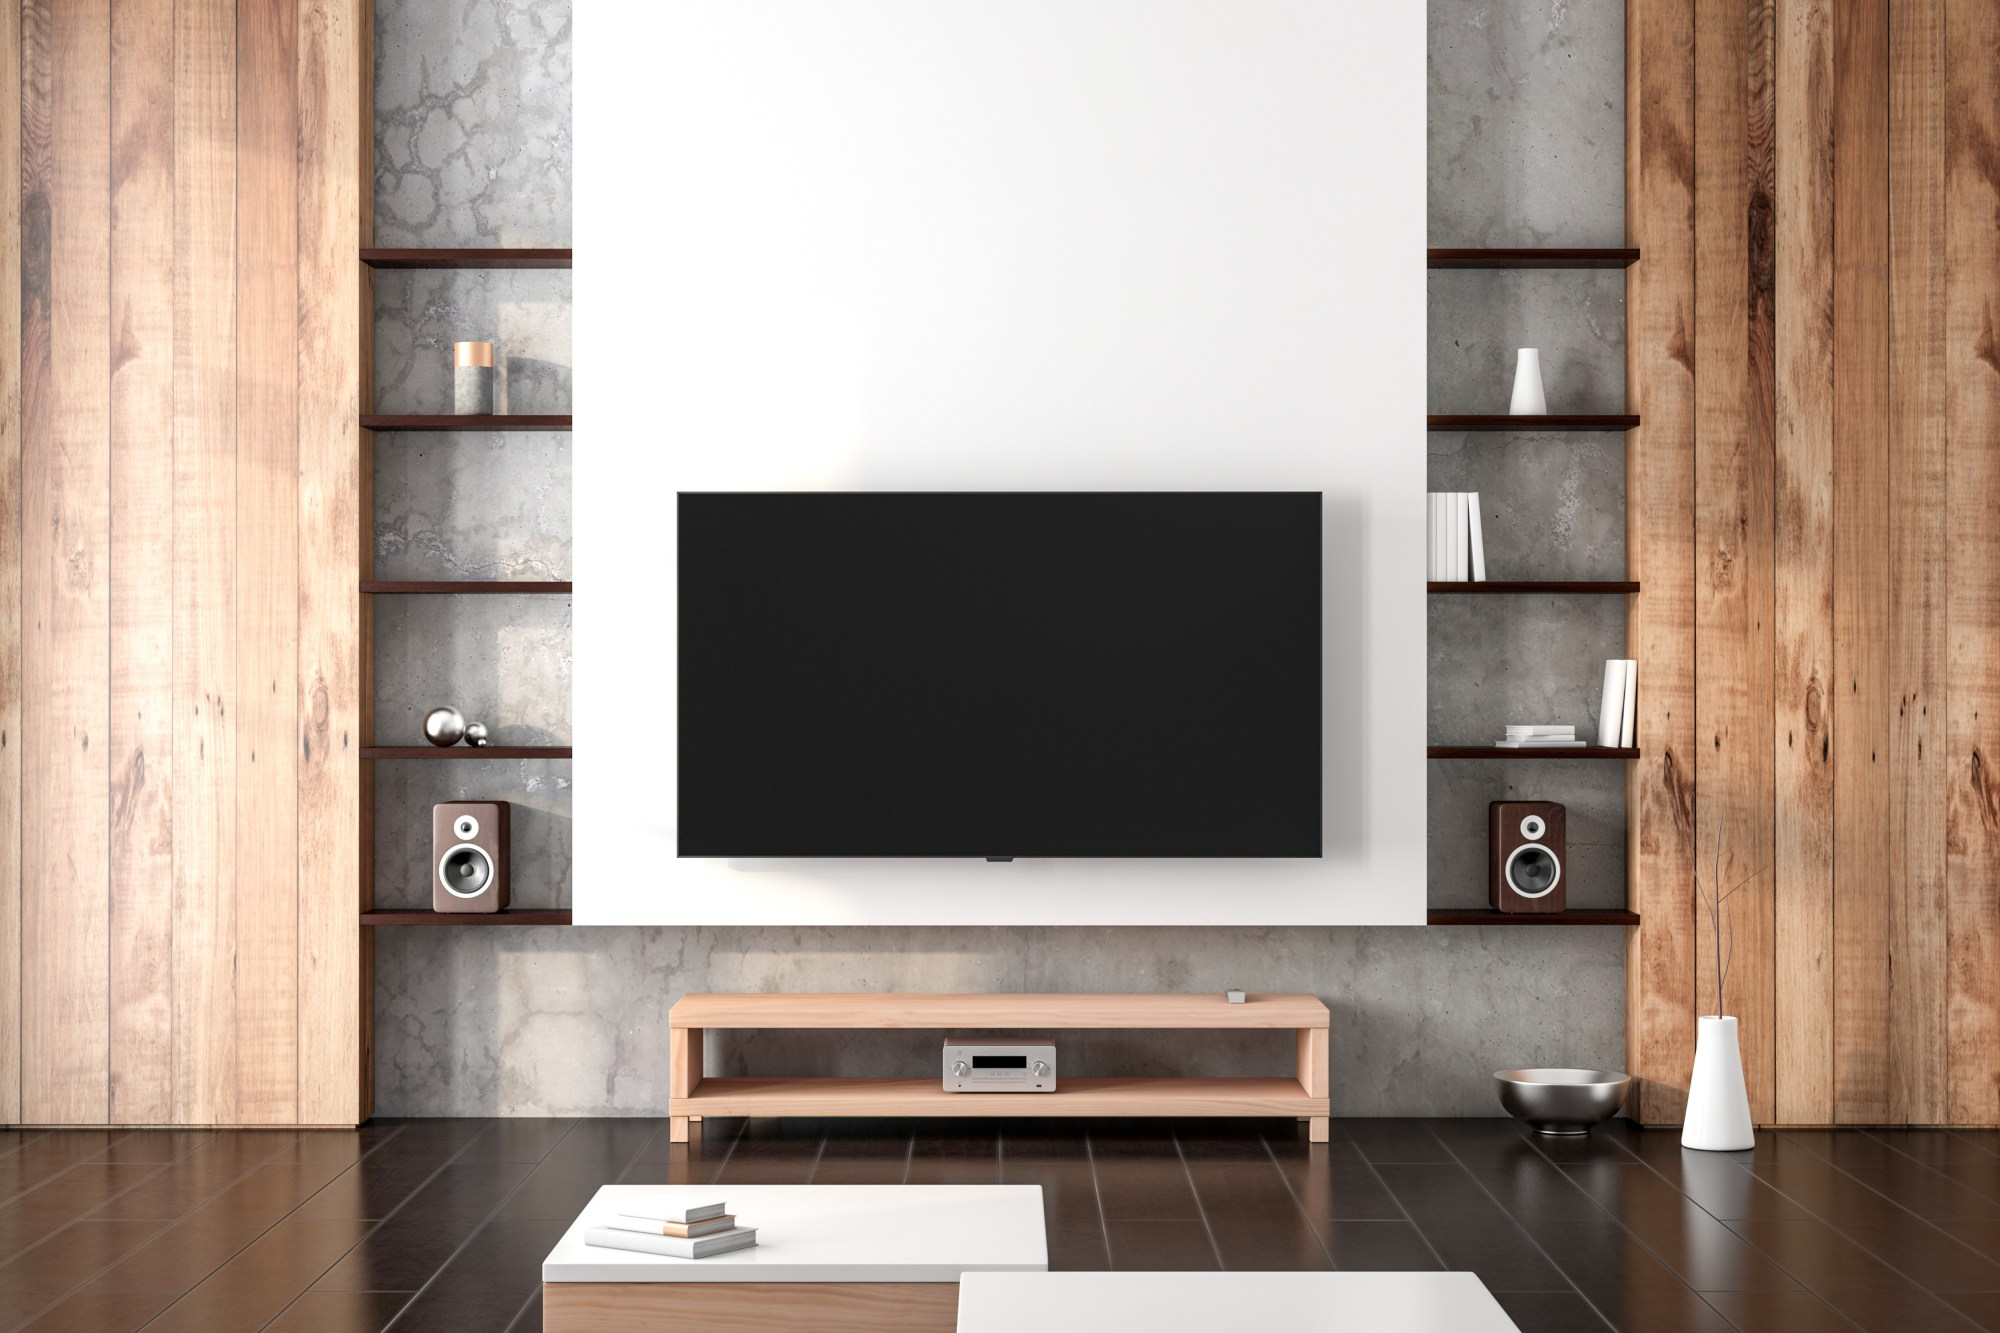 hight resolution of pre wiring to enhance your home theater experience